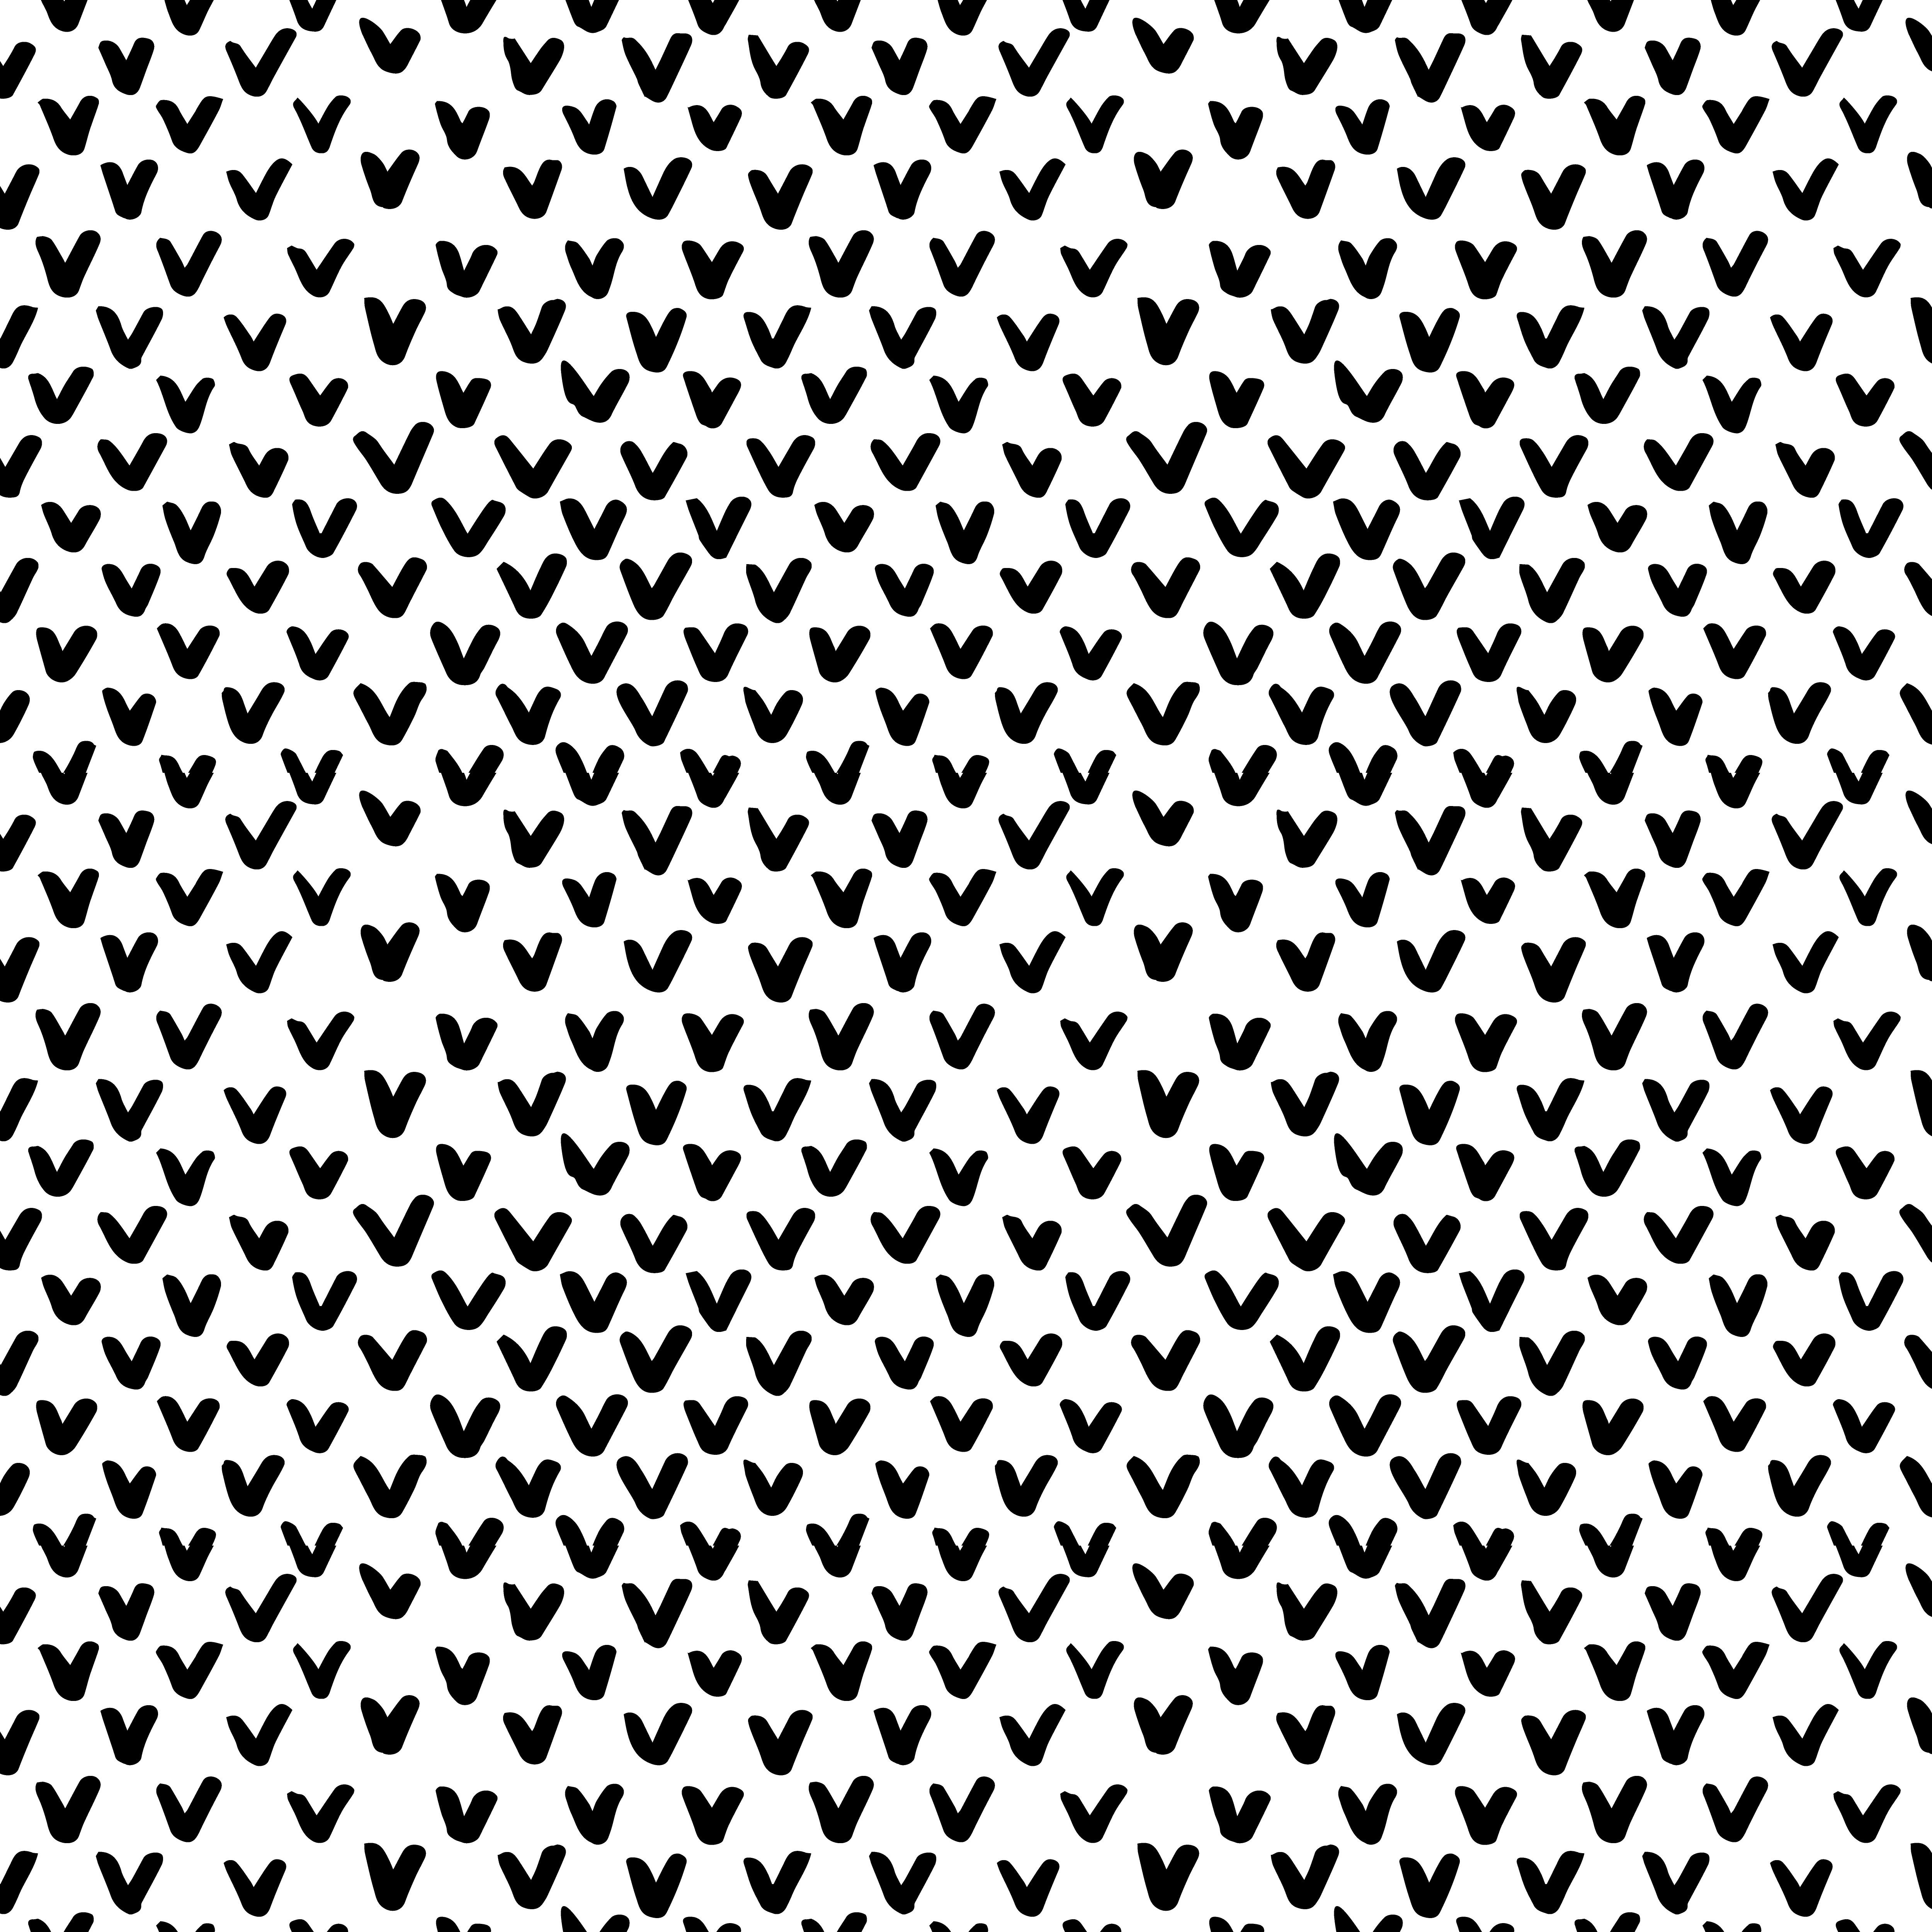 Brush pattern collection  example image 9